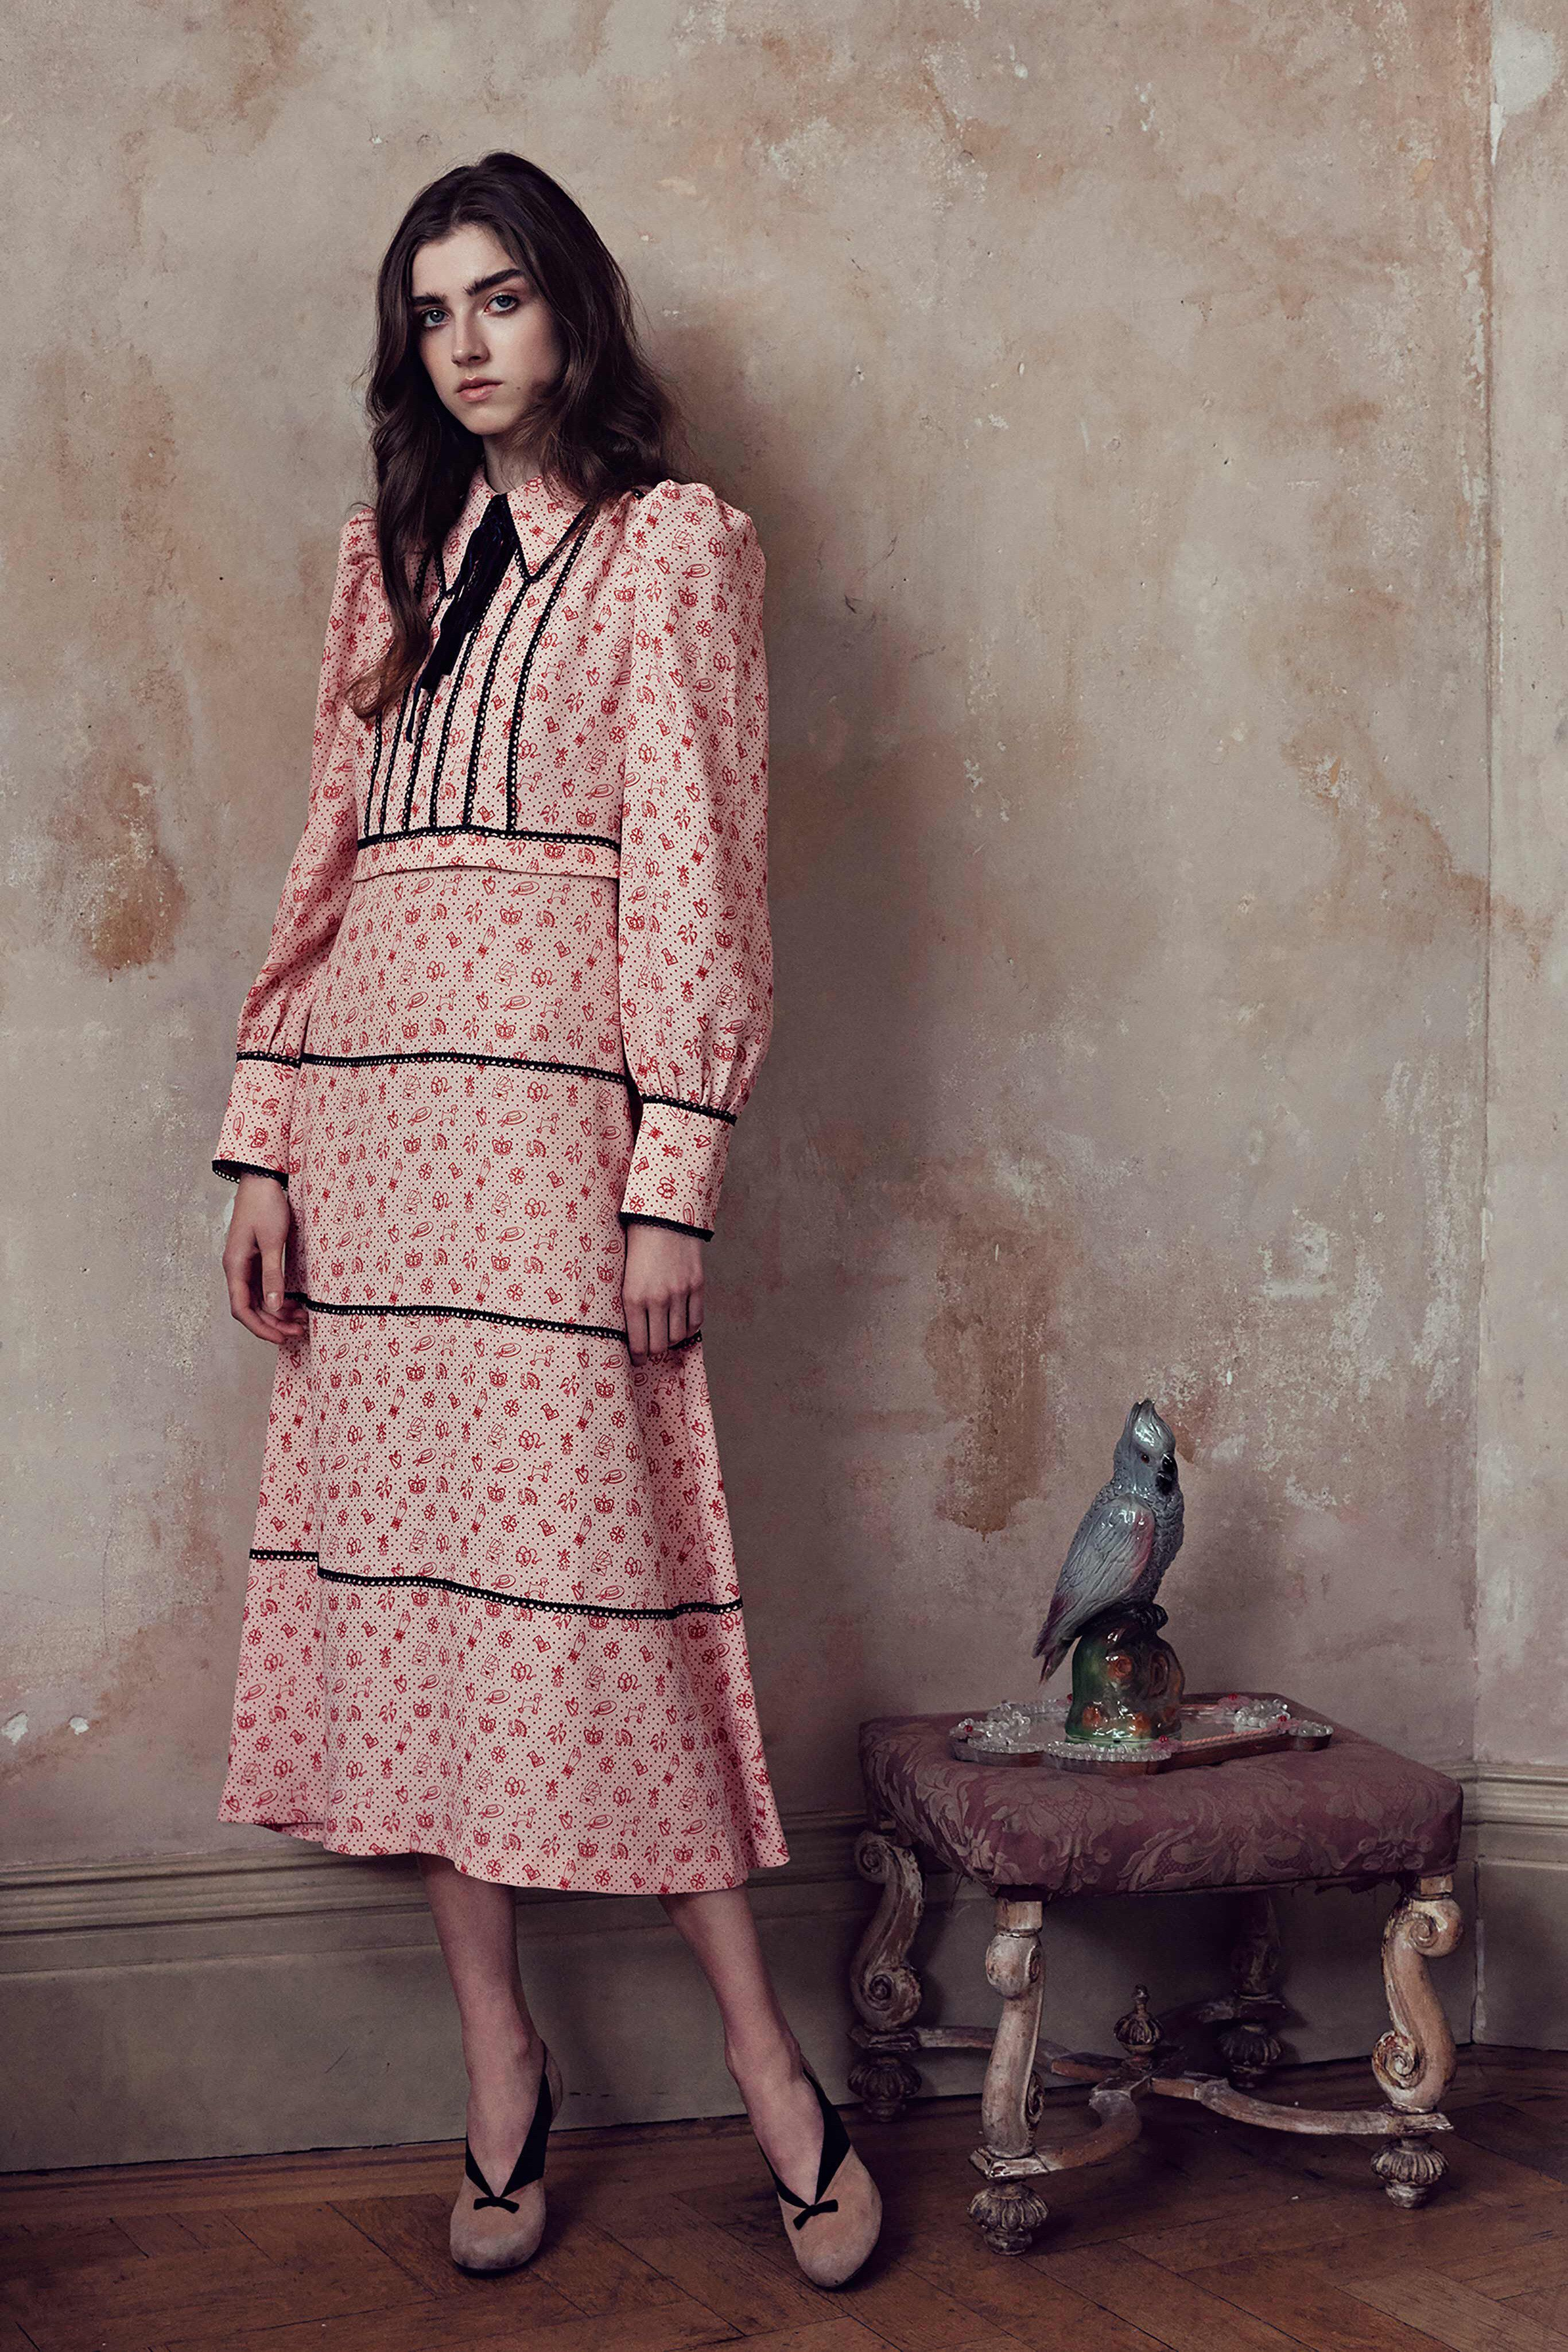 Orla Kiely SpringSummer 2019 Collection – London Fashion Week Orla Kiely SpringSummer 2019 Collection – London Fashion Week new pictures